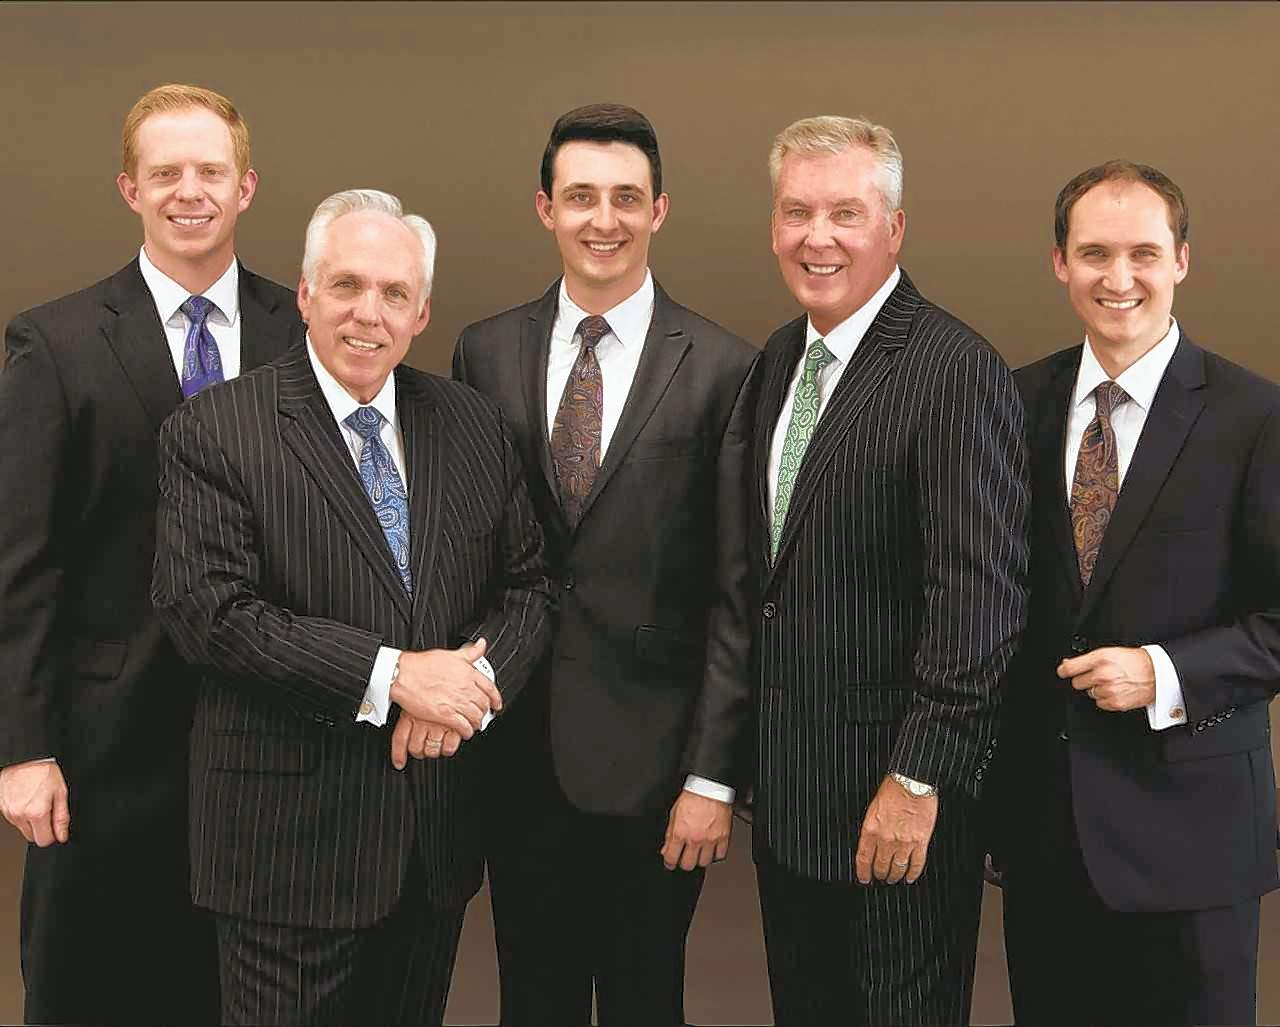 The Mark Trammel Quartet will perform on Saturday, March 23 at the Marion Cultural and Civic Center as part of a multi-group southern gospel concert.